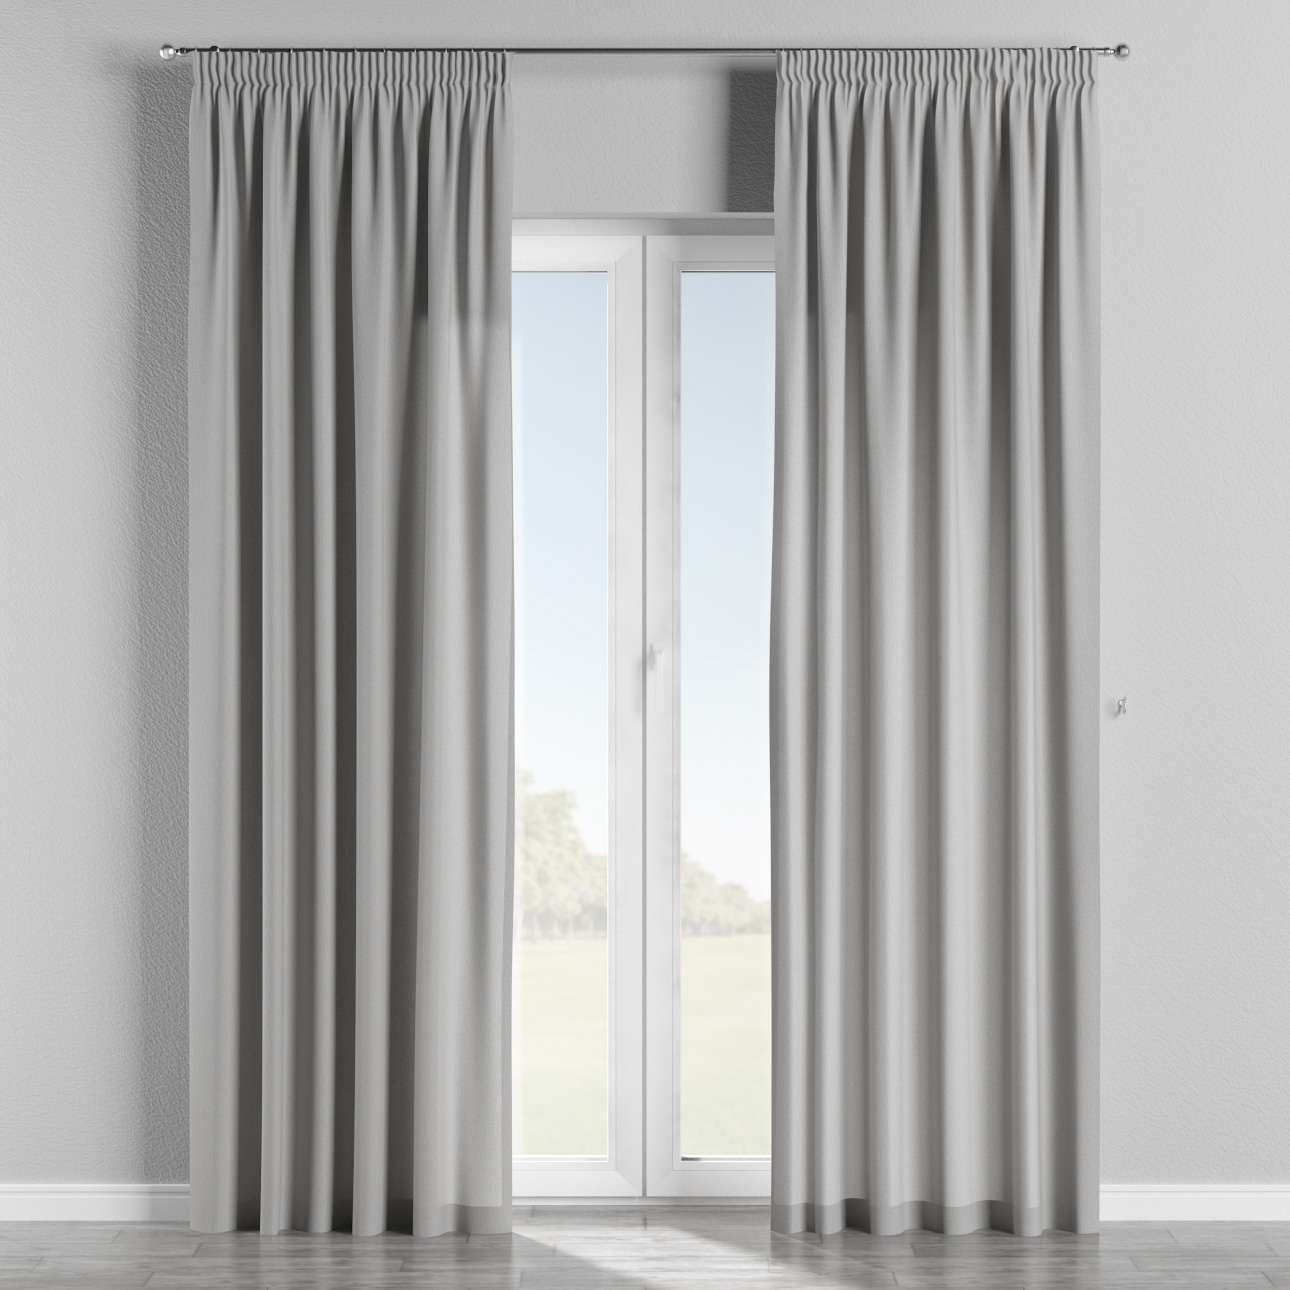 Pencil pleat curtains 130 x 260 cm (51 x 102 inch) in collection Chenille, fabric: 702-23